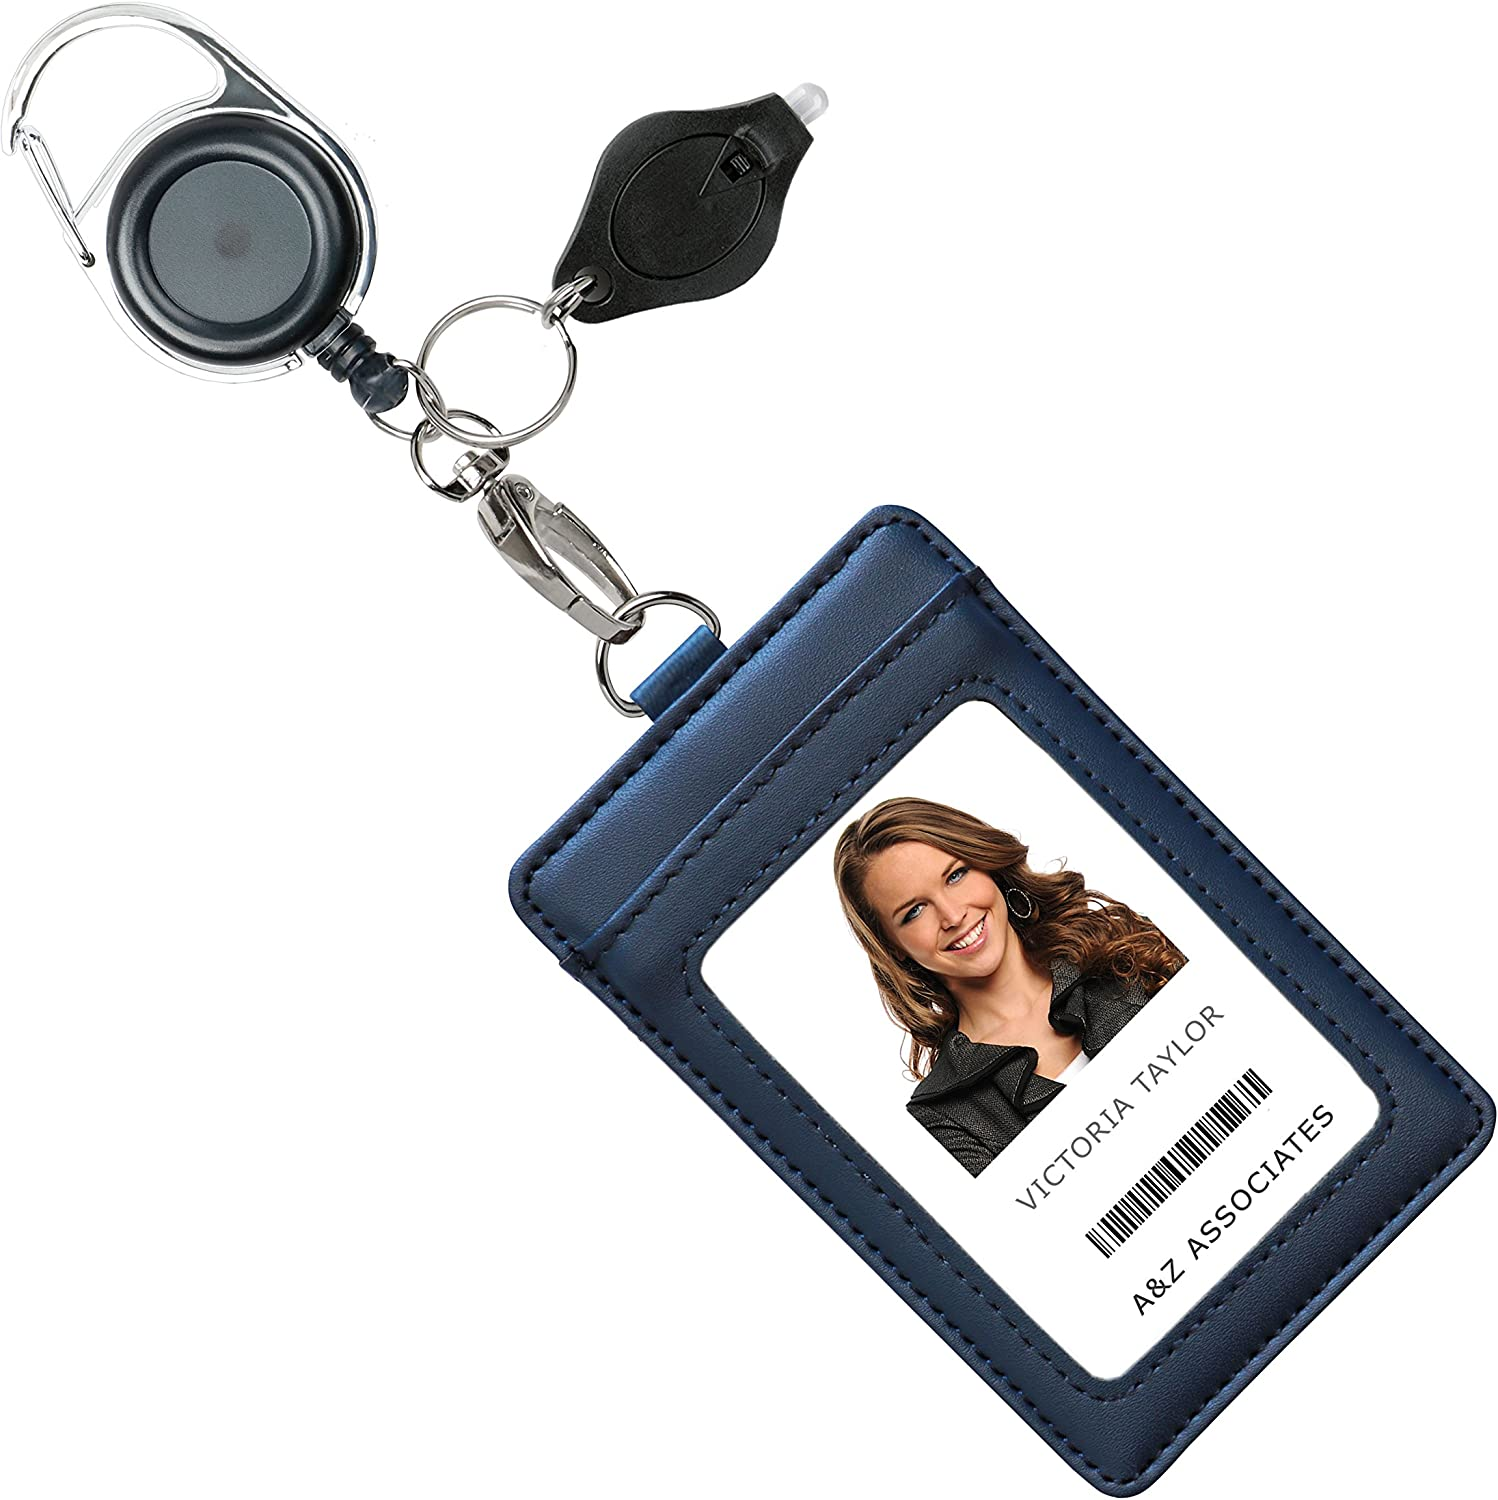 Genuine Leather ID Badge Holder Wallet with Heavy Duty Carabiner Retractable Reel, Key Ring and Metal Clip, 3 Card Pockets. Holds Multiple Cards & Keys. Key Chain Flashlight. Vertical. Midnight Blue